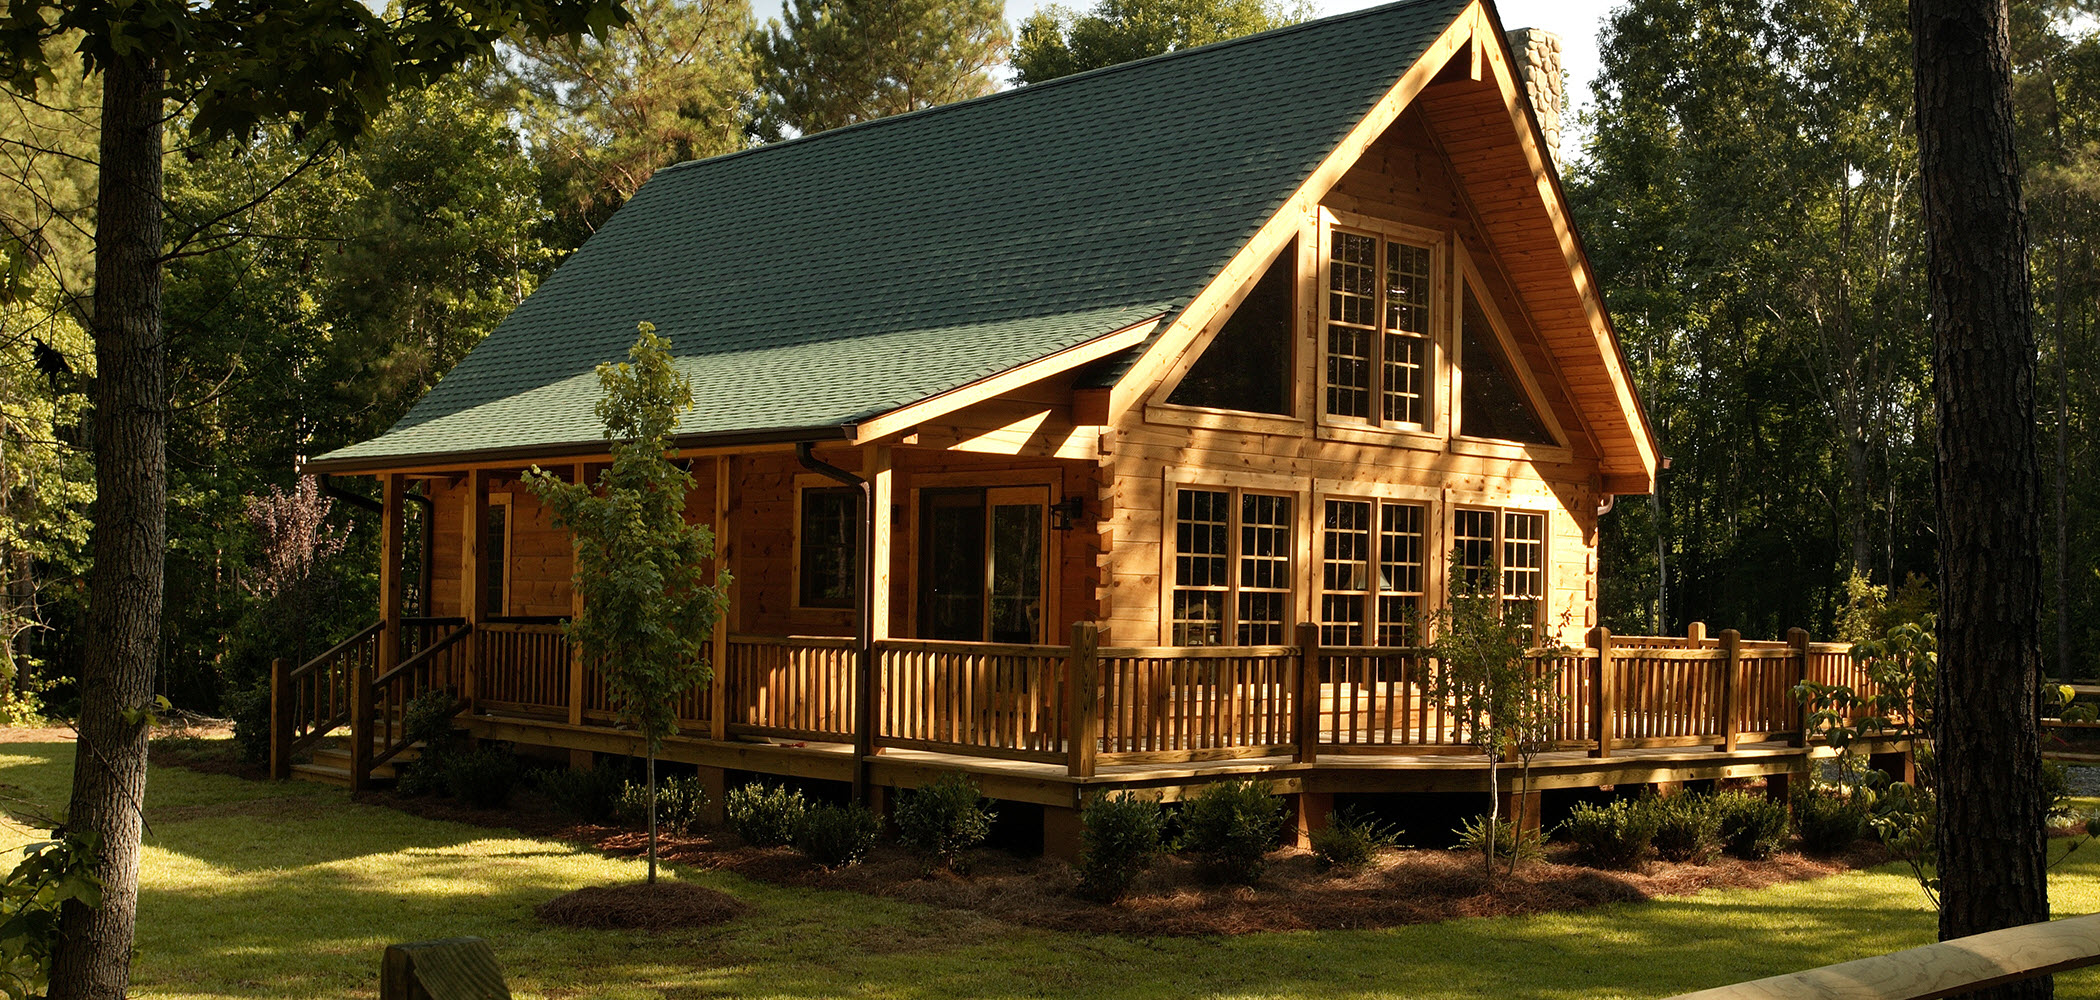 Log houses r nkh zak megaport media Stone cottage kit homes